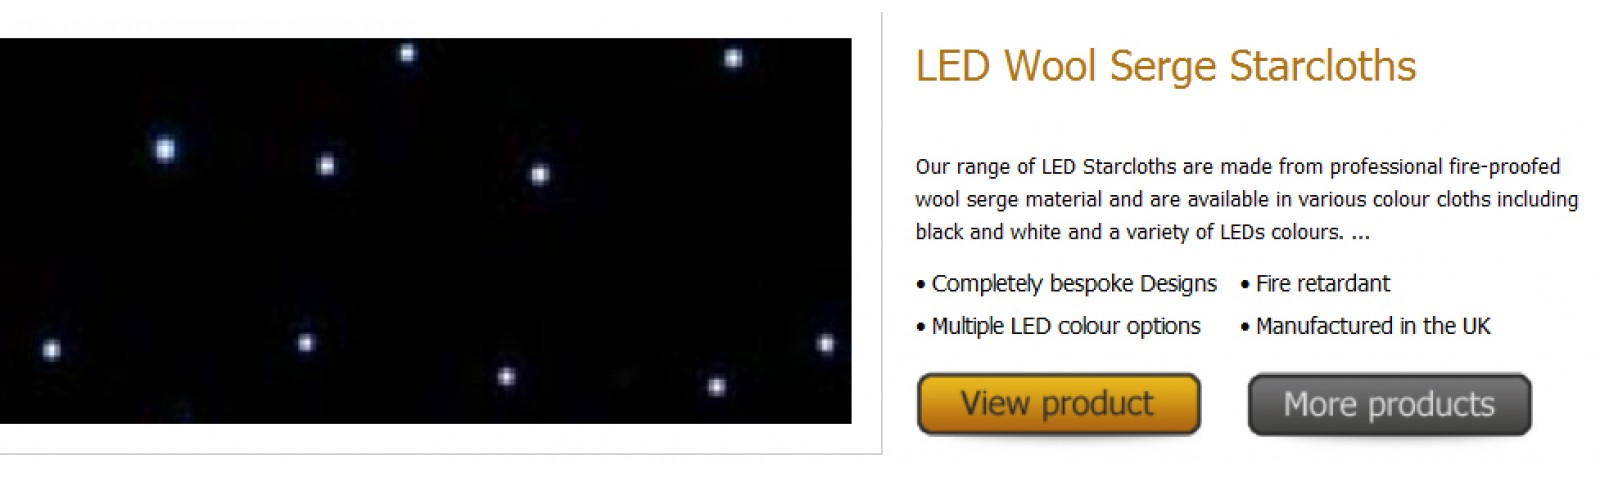 UK Made LED Starcloths